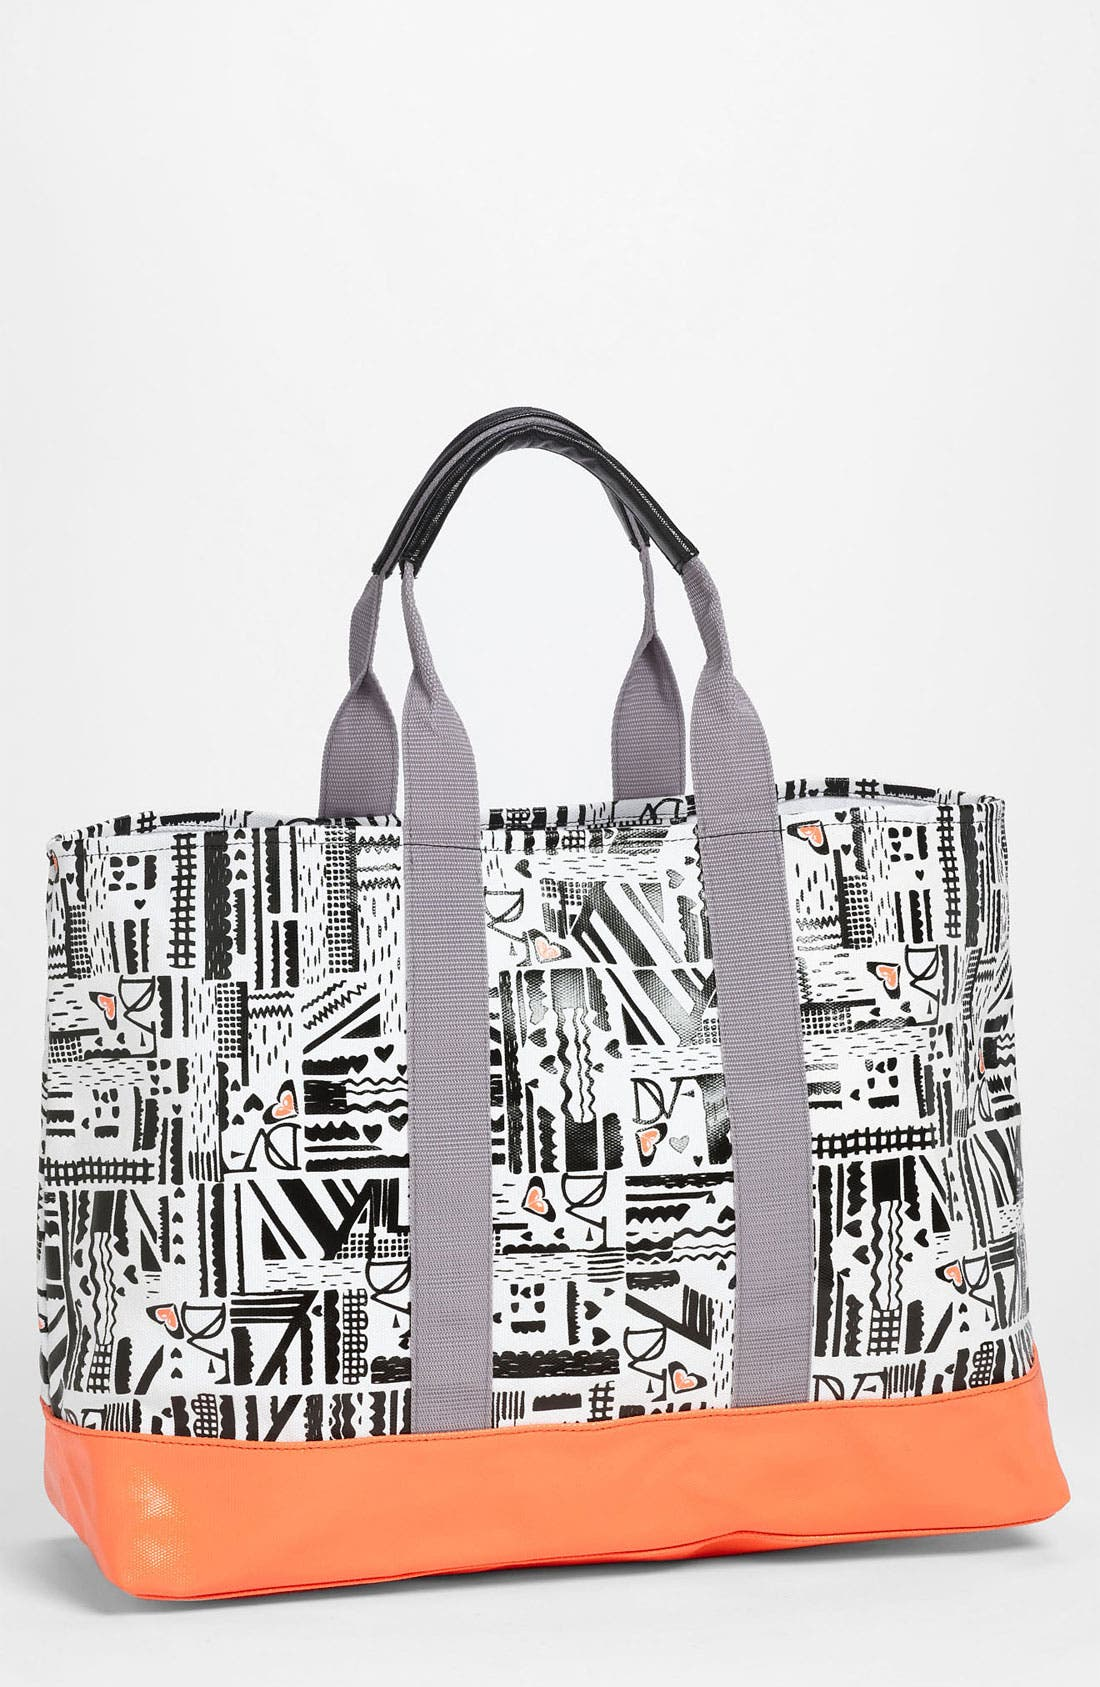 Alternate Image 1 Selected - 'DVF Loves Roxy' Tote Bag